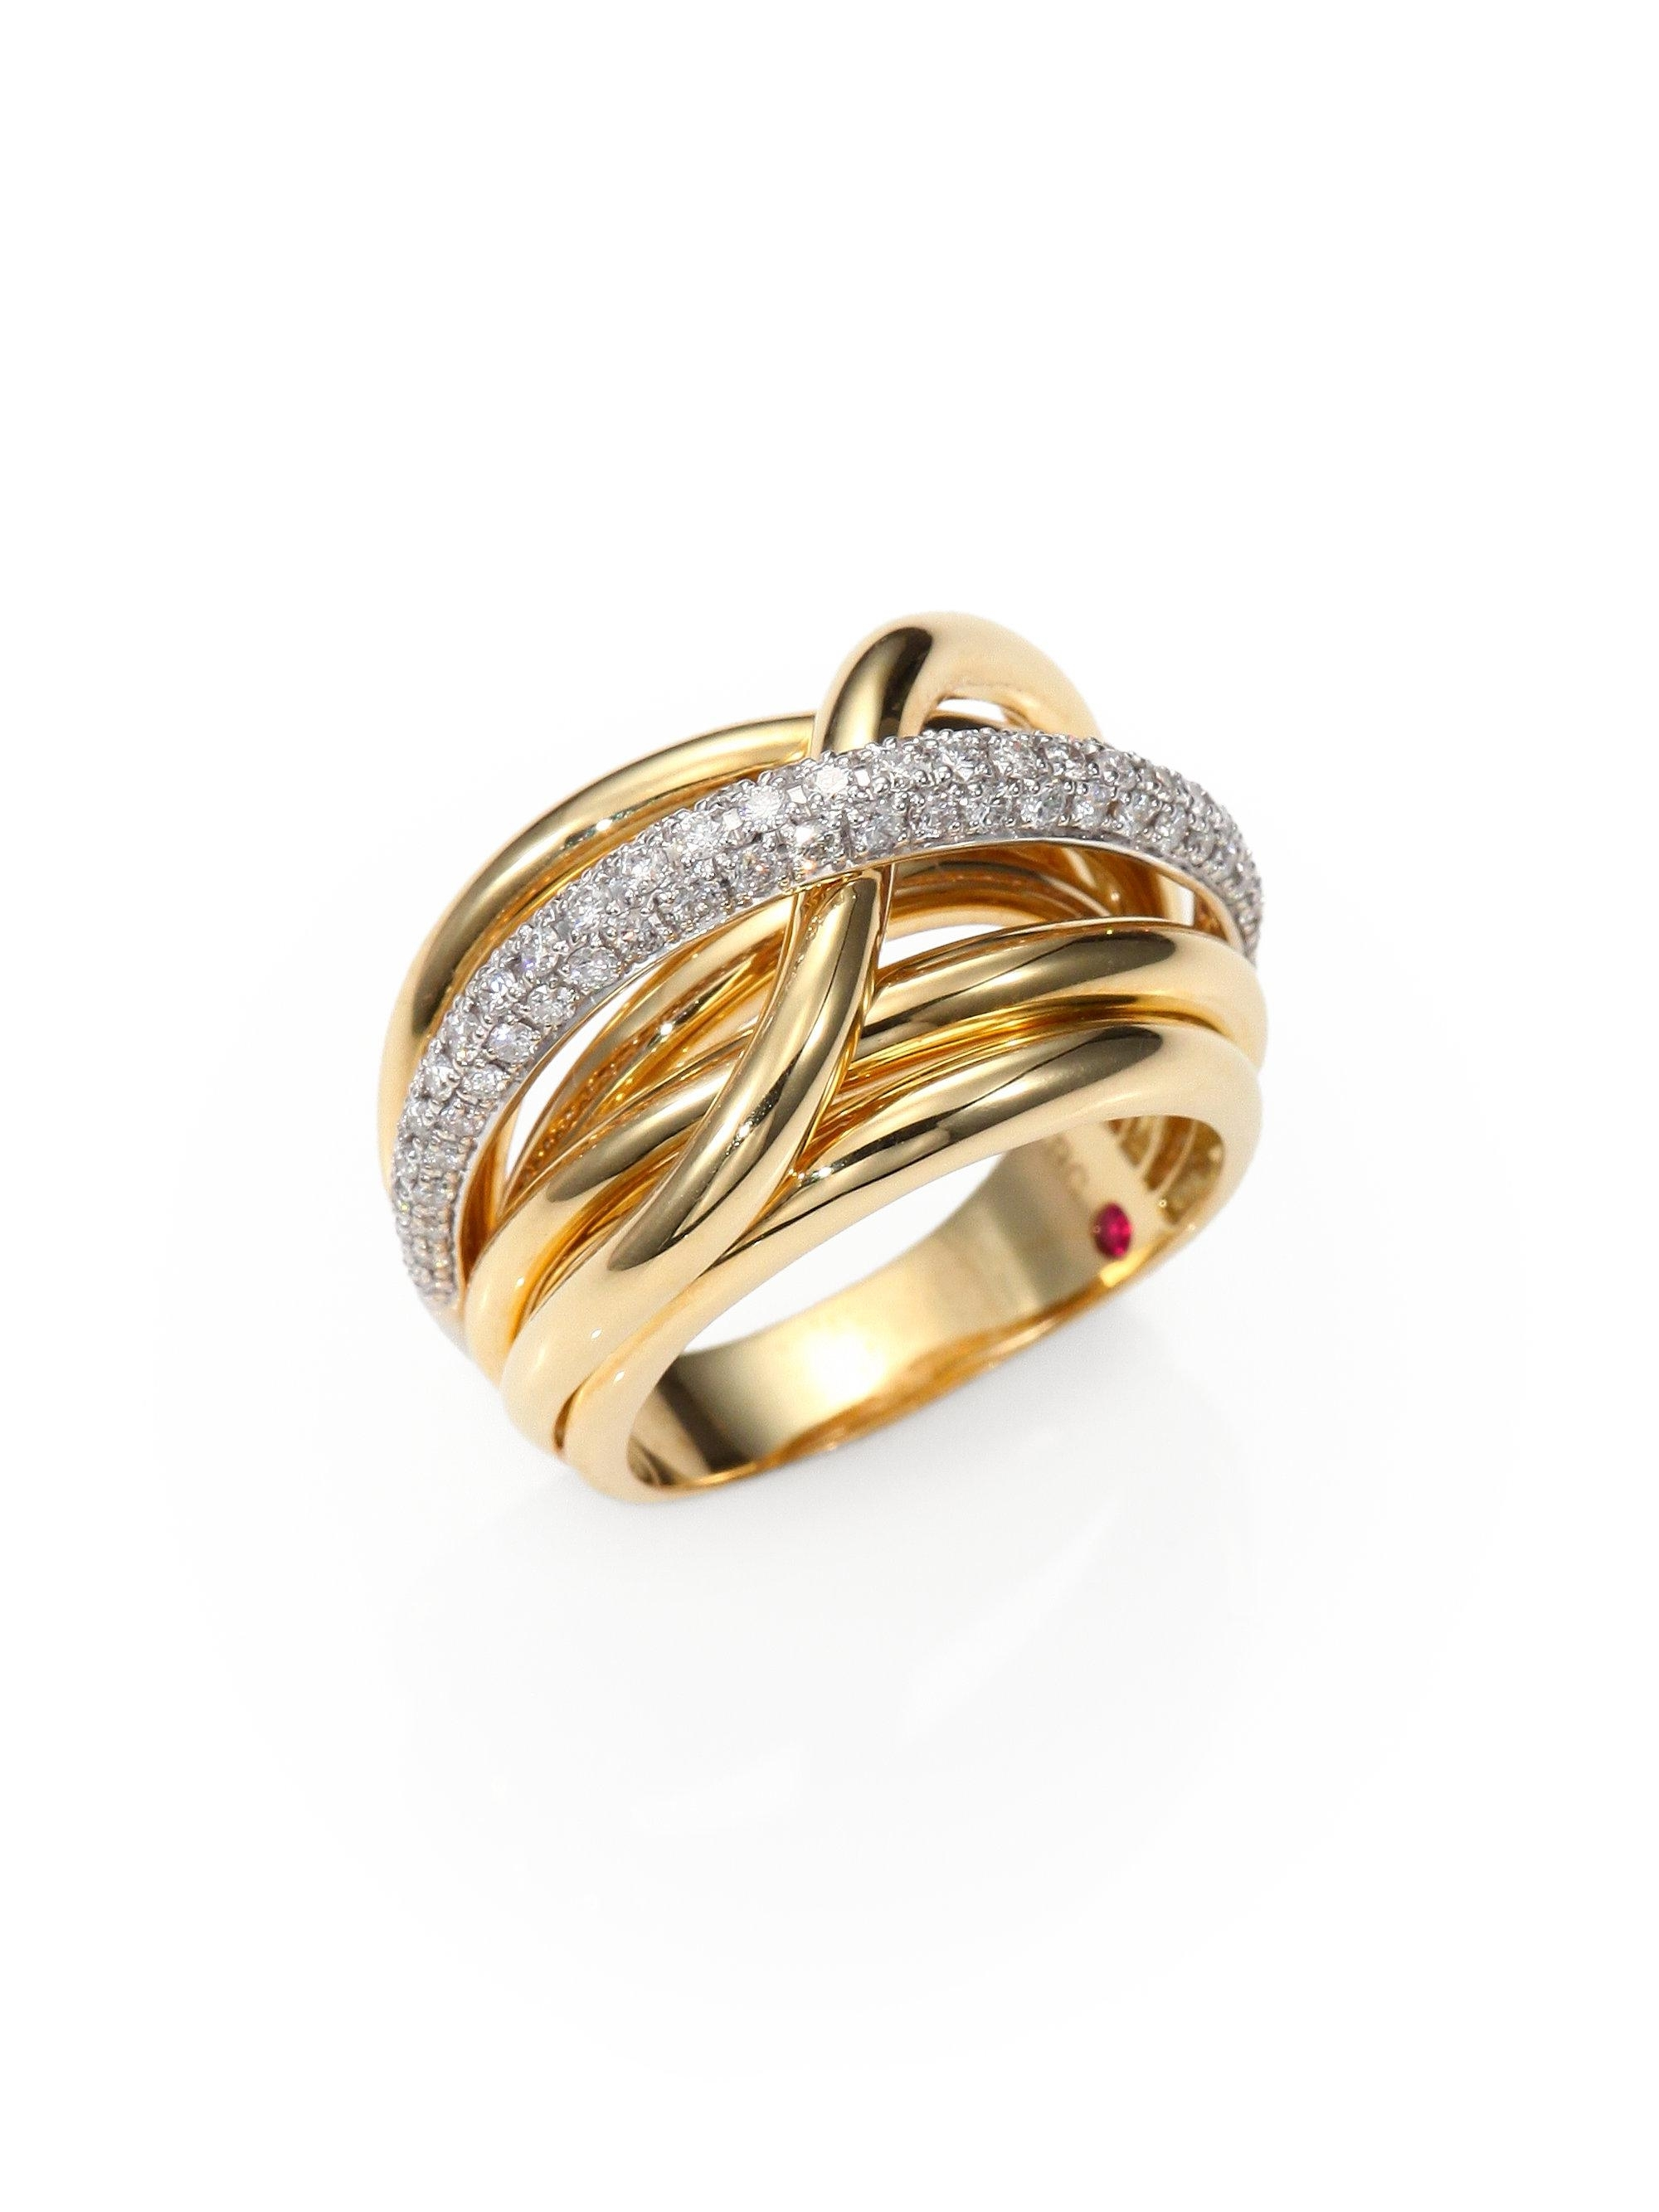 Lyst – Roberto Coin Classica Diamond & 18K Yellow Gold Crossover Throughout Latest Diamond Layered Crossover Bands In 18K White Gold (View 13 of 15)